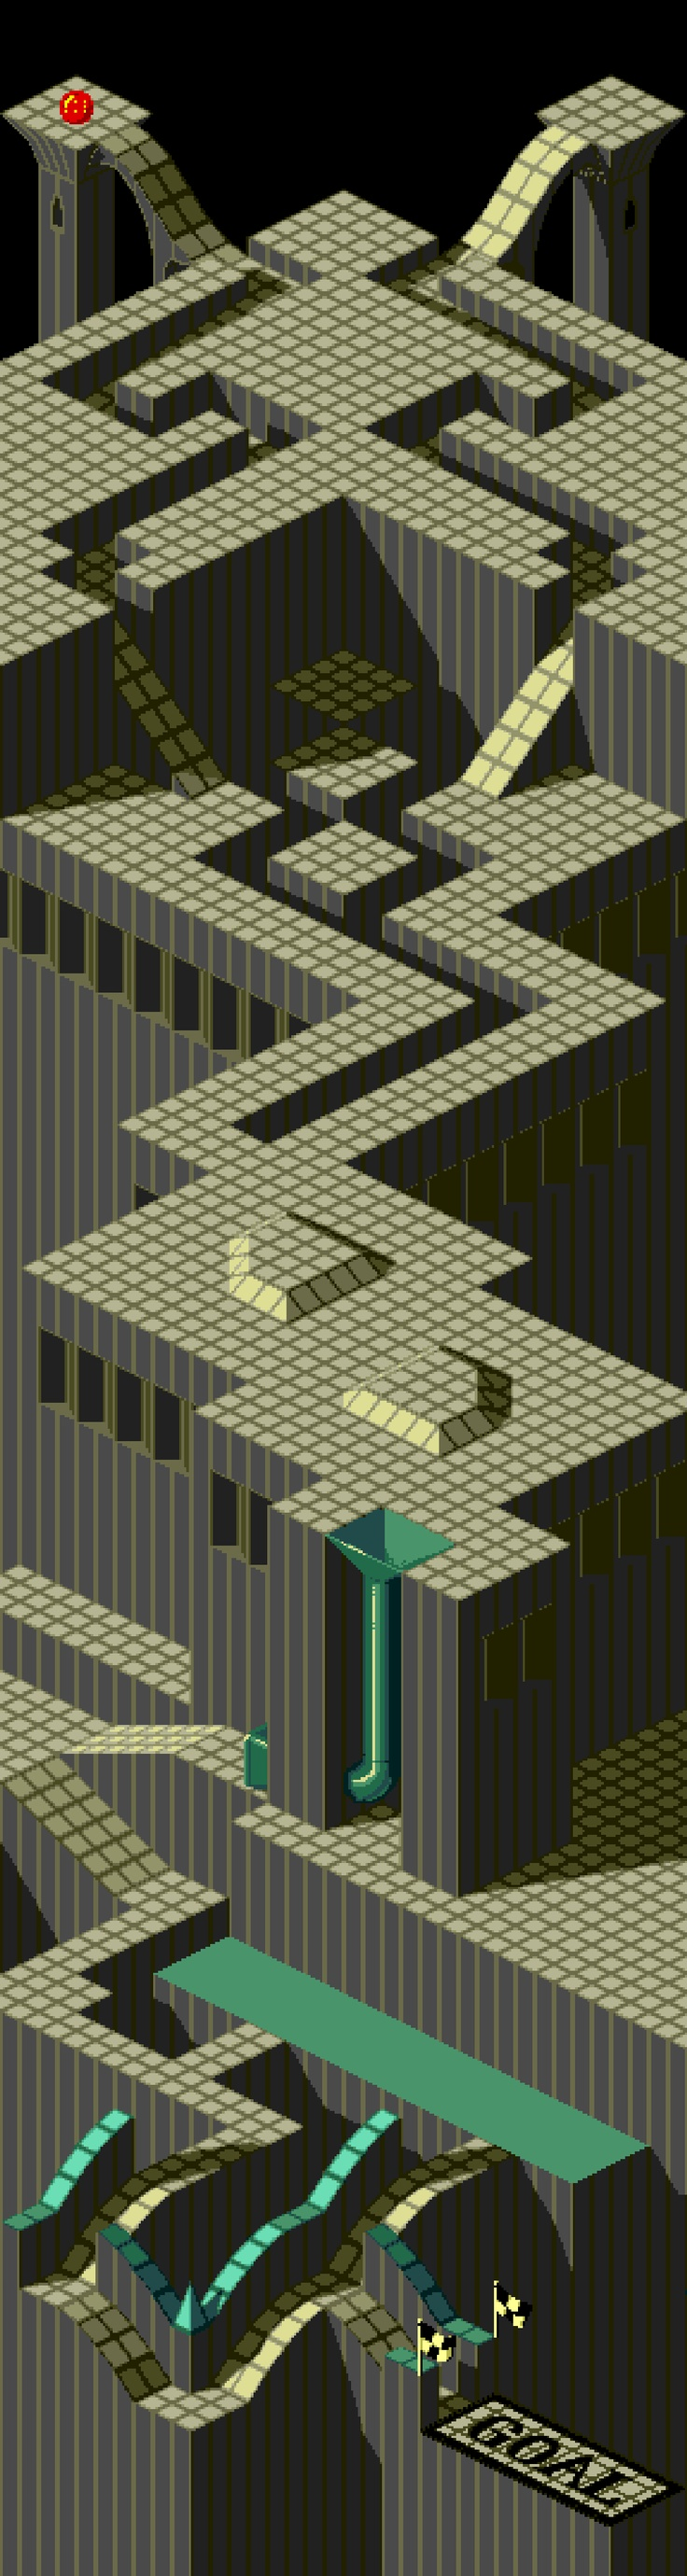 Marble Madness...I forgot about this game